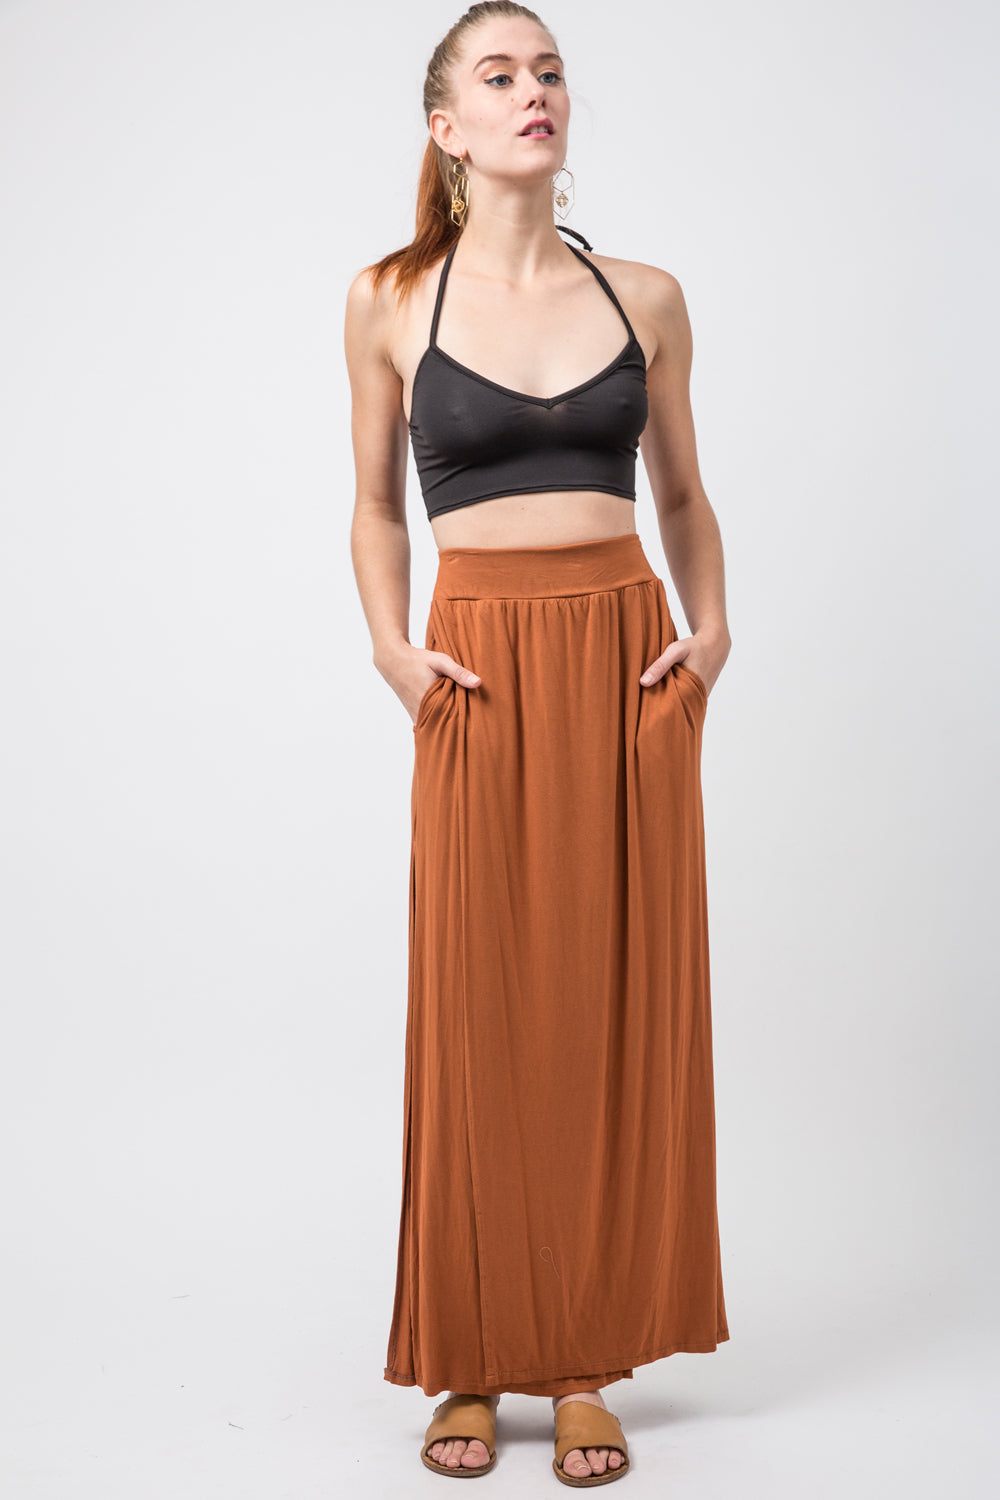 Ash Skirt [KUCOON] high waisted long skirt with slits on side and pockets